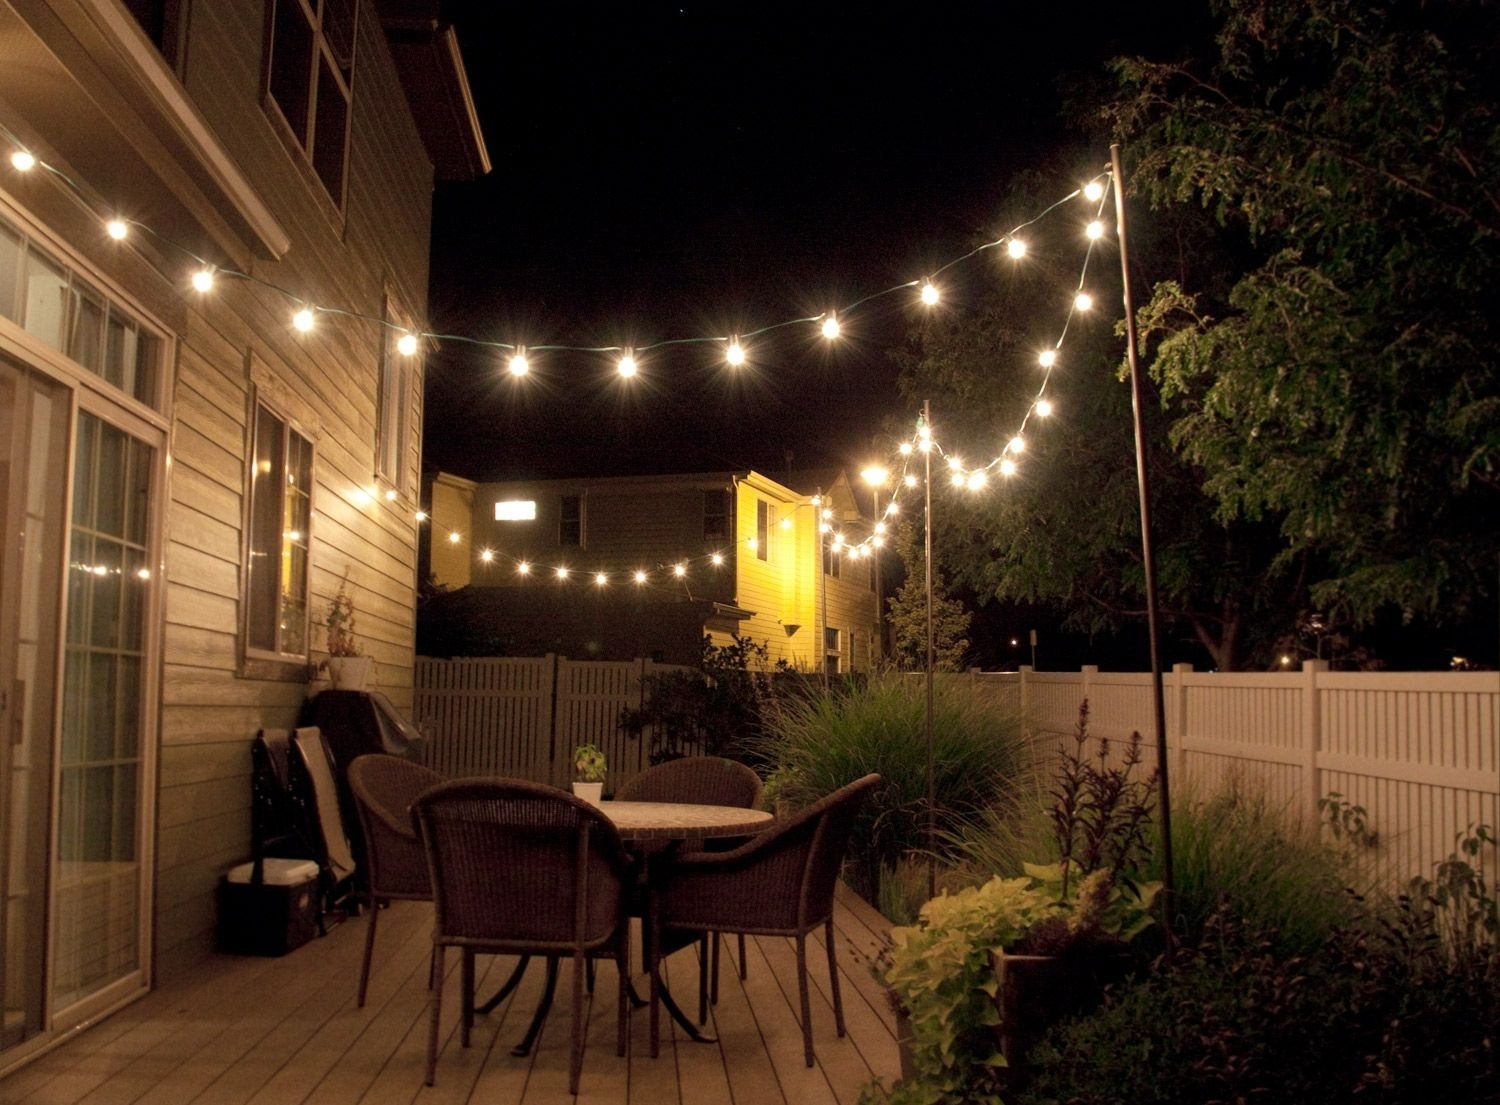 How To Make Inexpensive Poles To Hang String Lights On – Café Style Intended For Inexpensive Outdoor Hanging Lights (View 9 of 15)